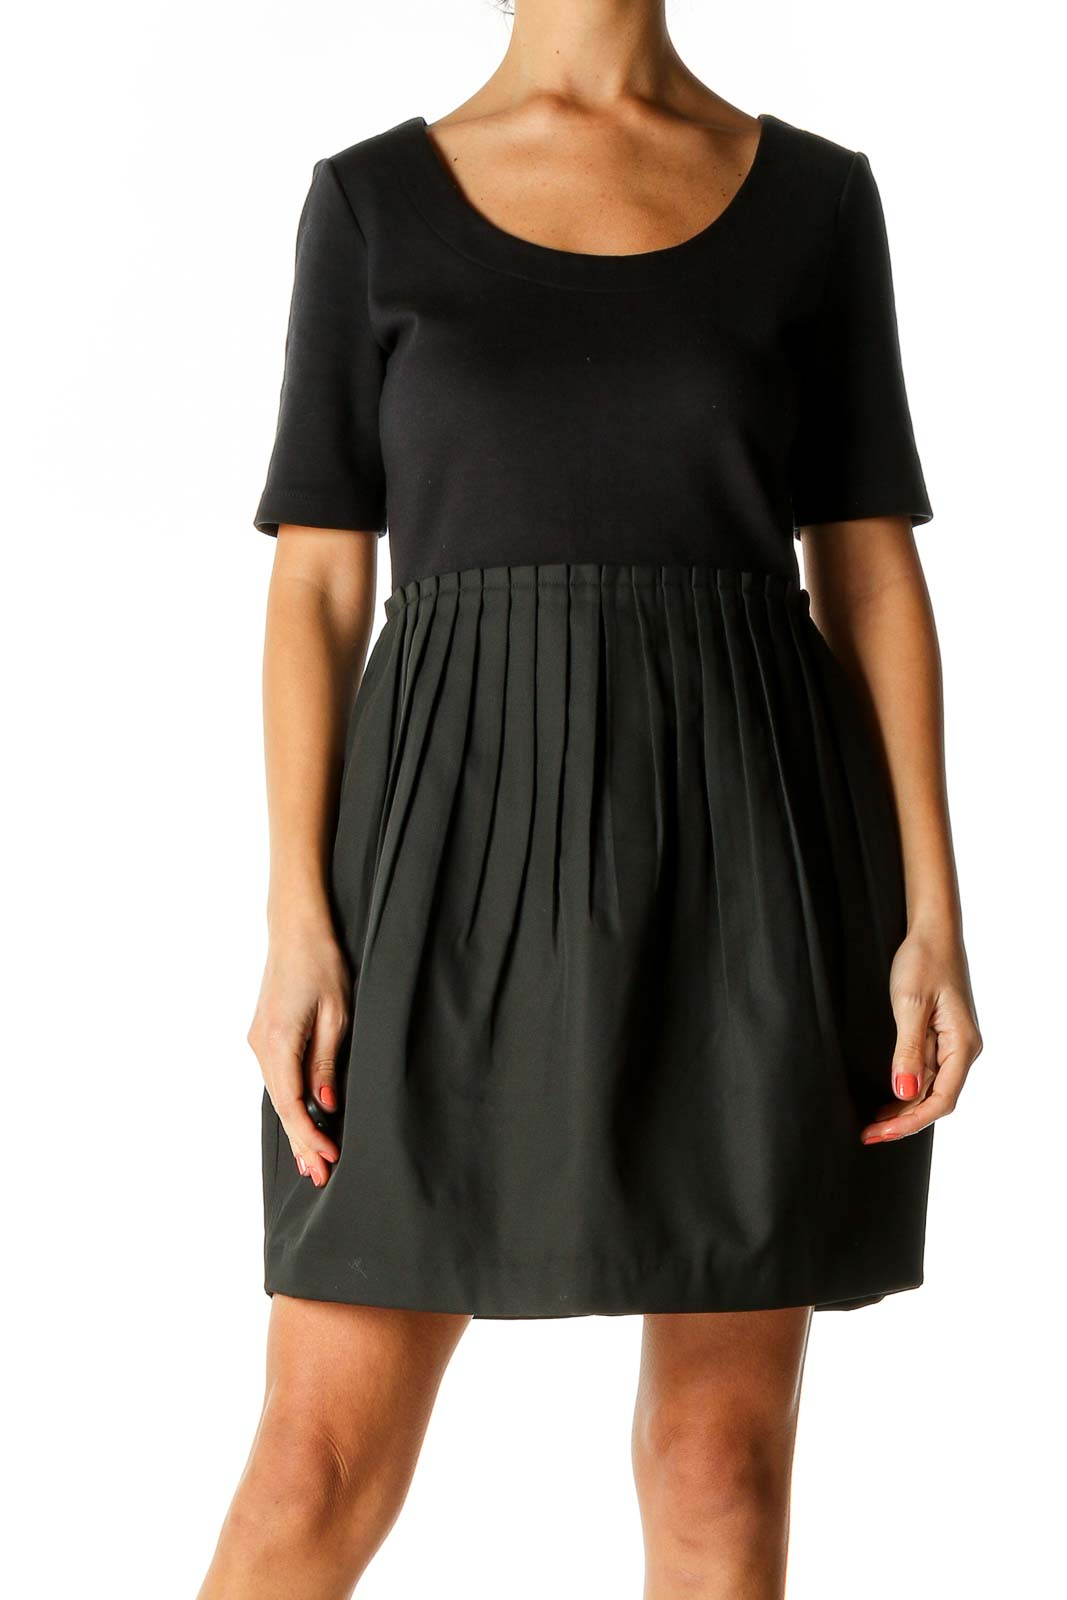 Black Textured Chic Dress Front